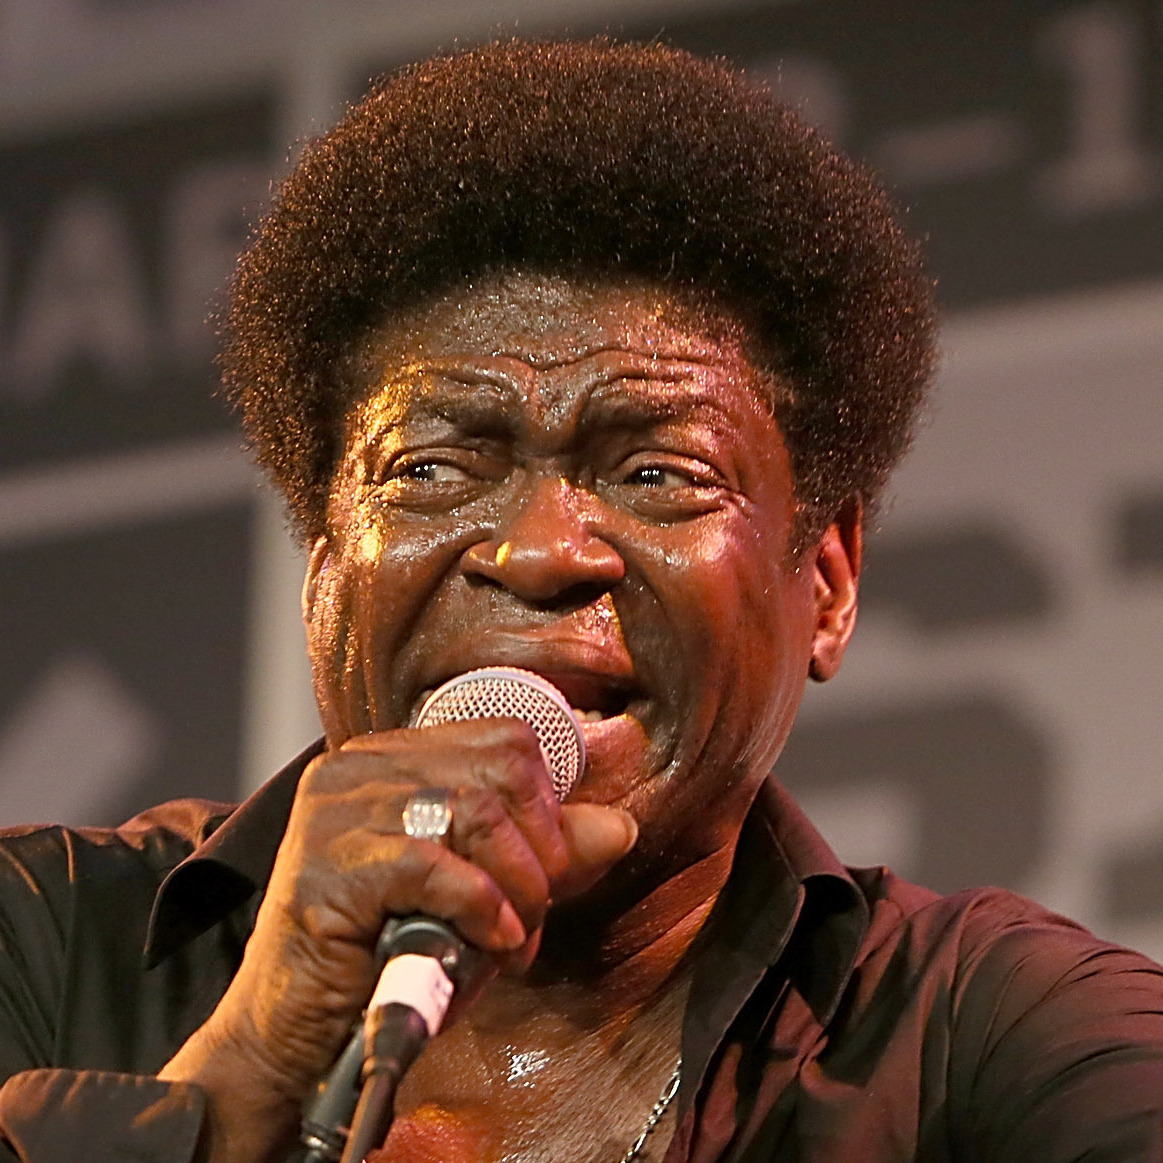 The Screaming Eagle of Soul, Charles Bradley, is in heavy rotation on WXPN in Philadelphia.